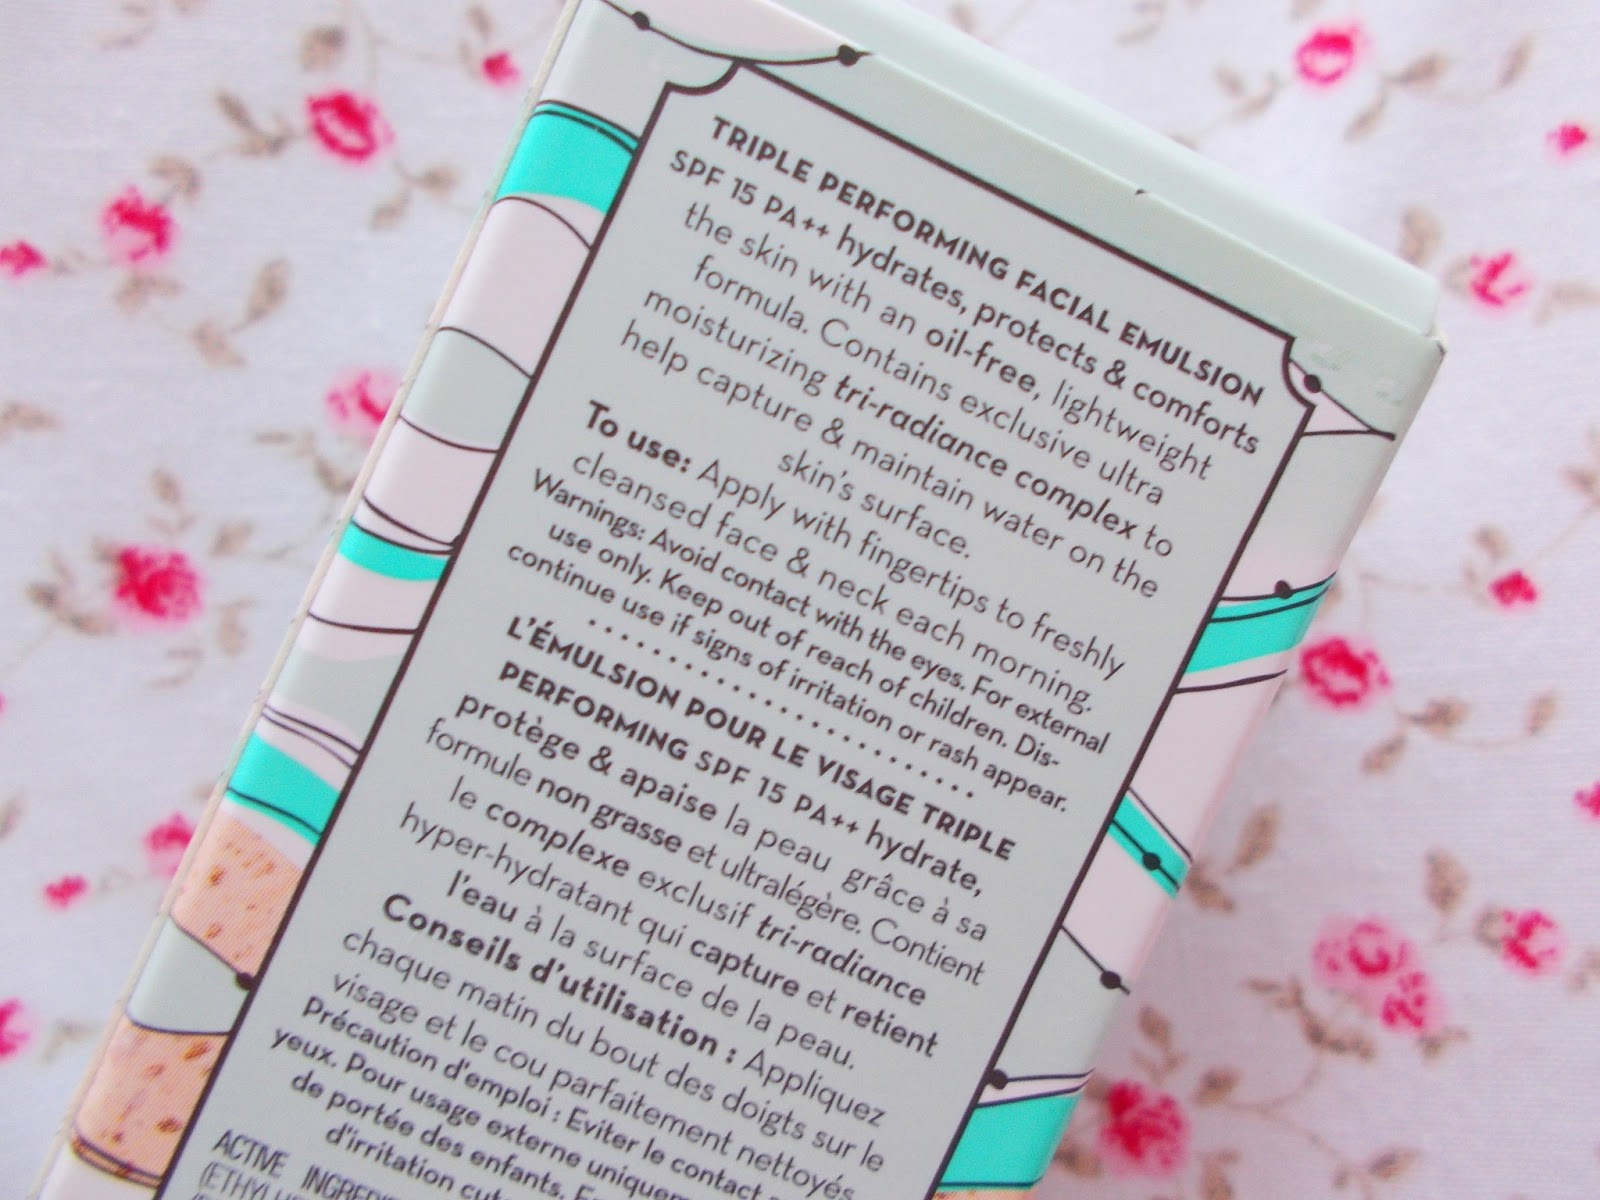 Benefit Triple Performing Facial Emulsion packaging details